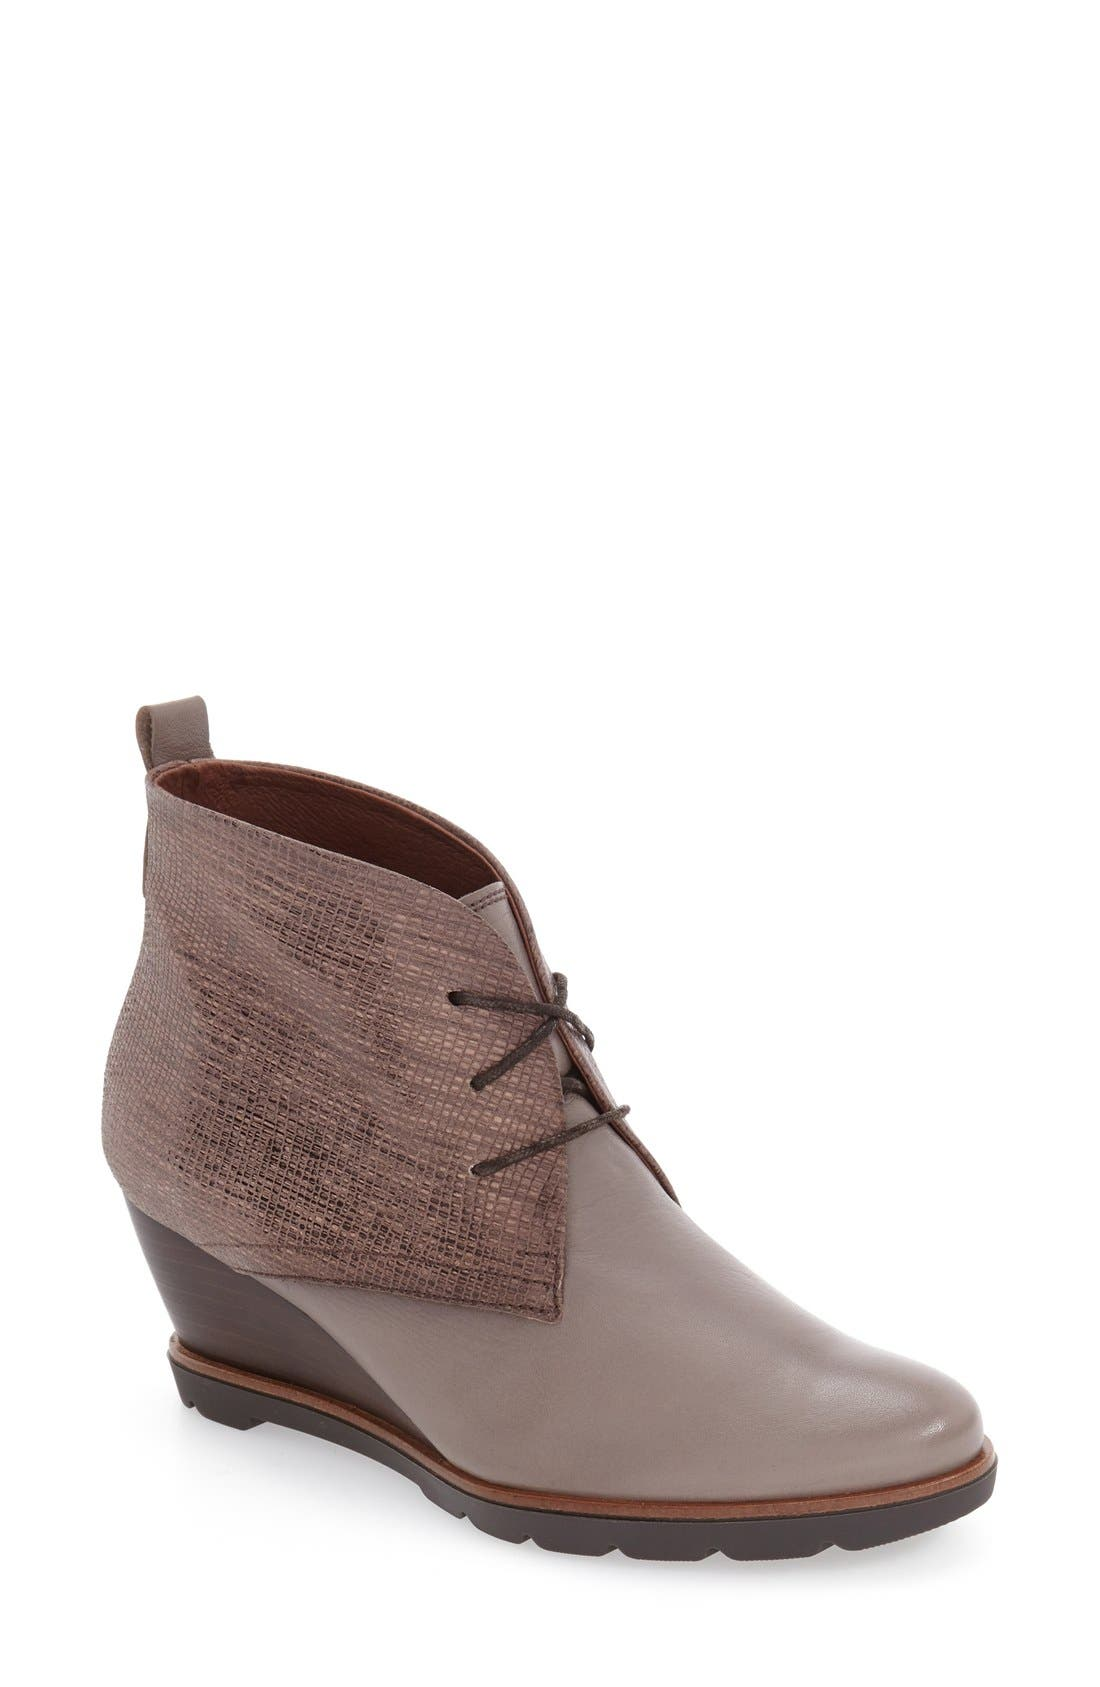 'Harmonie' Lace-Up Wedge Bootie,                             Main thumbnail 1, color,                             200